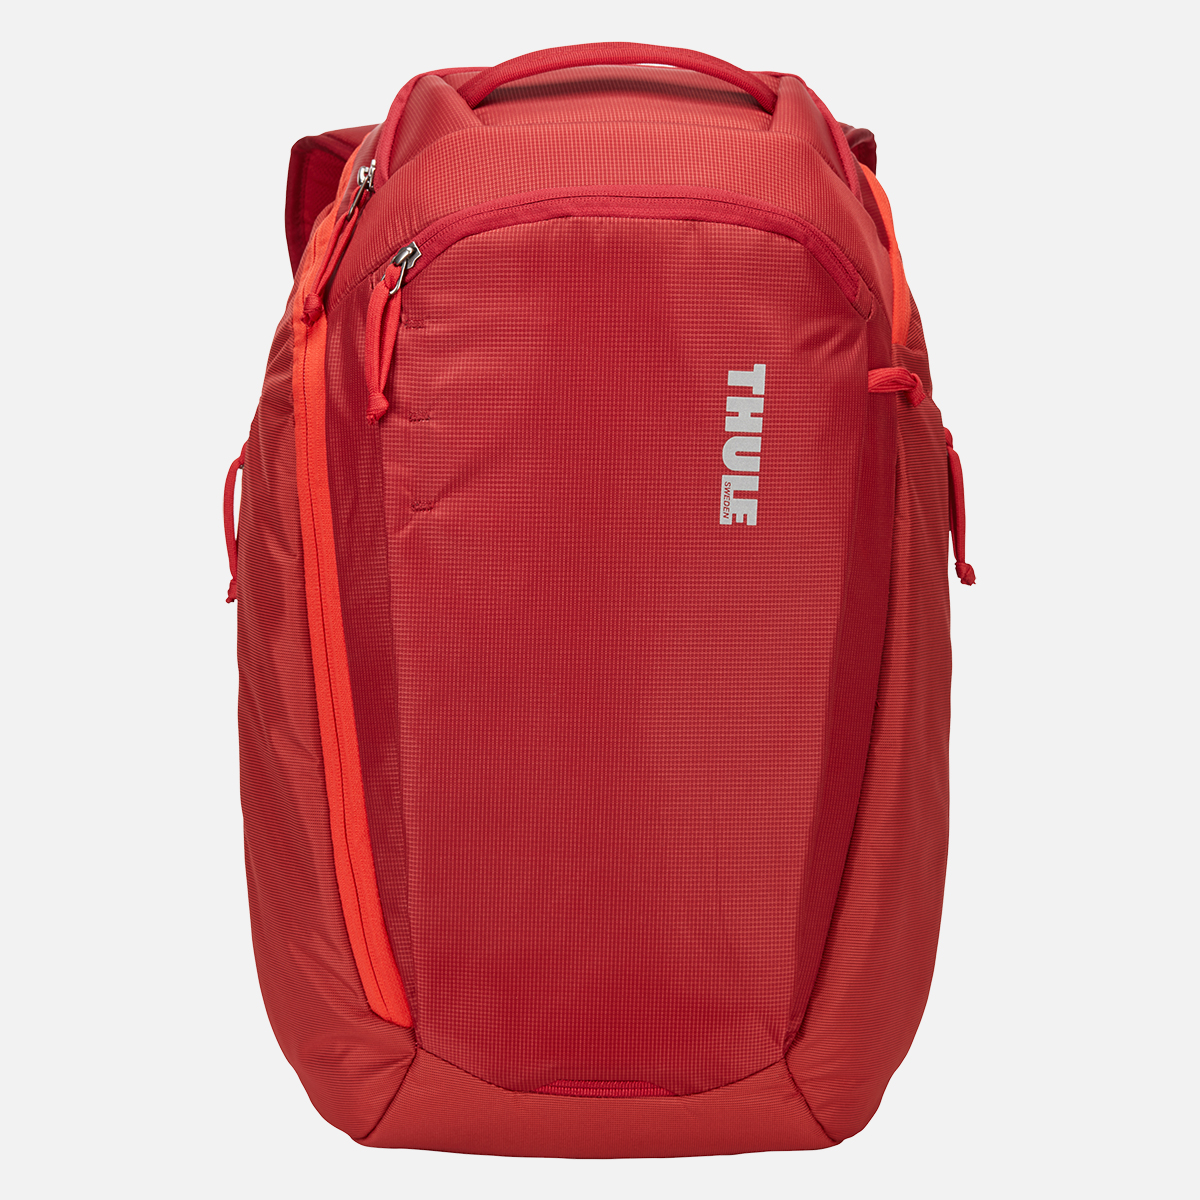 EnRoute Backpack 23L - Red Feather